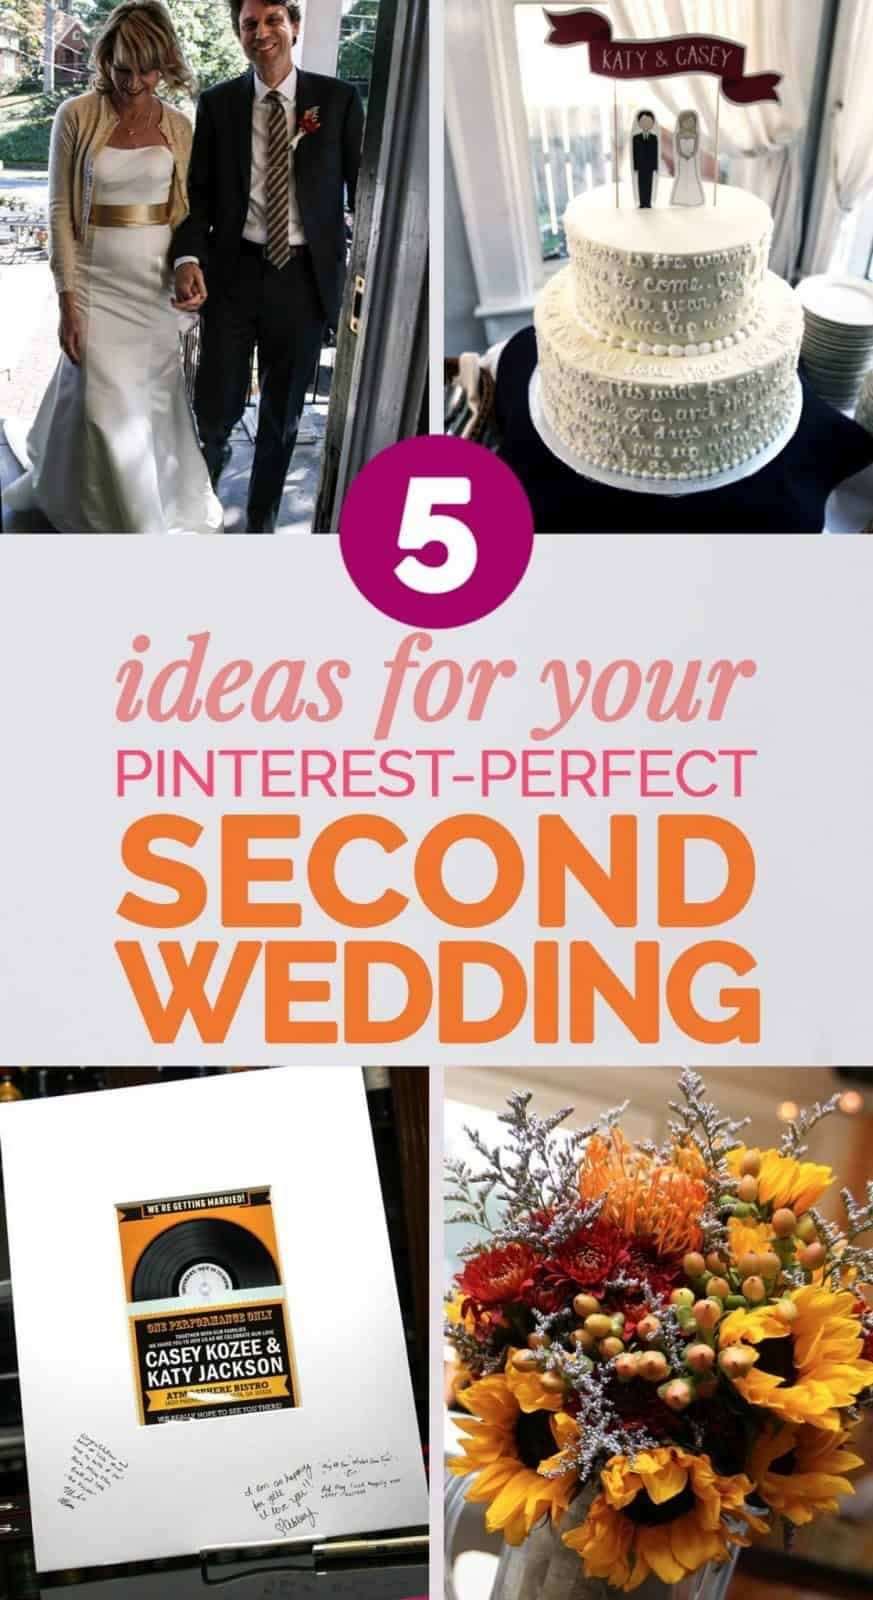 How To Plan The Perfect Second Wedding Over 40 In 2020 Wedding Ideas For Second Marriage Second Weddings Wedding Dress Over 40